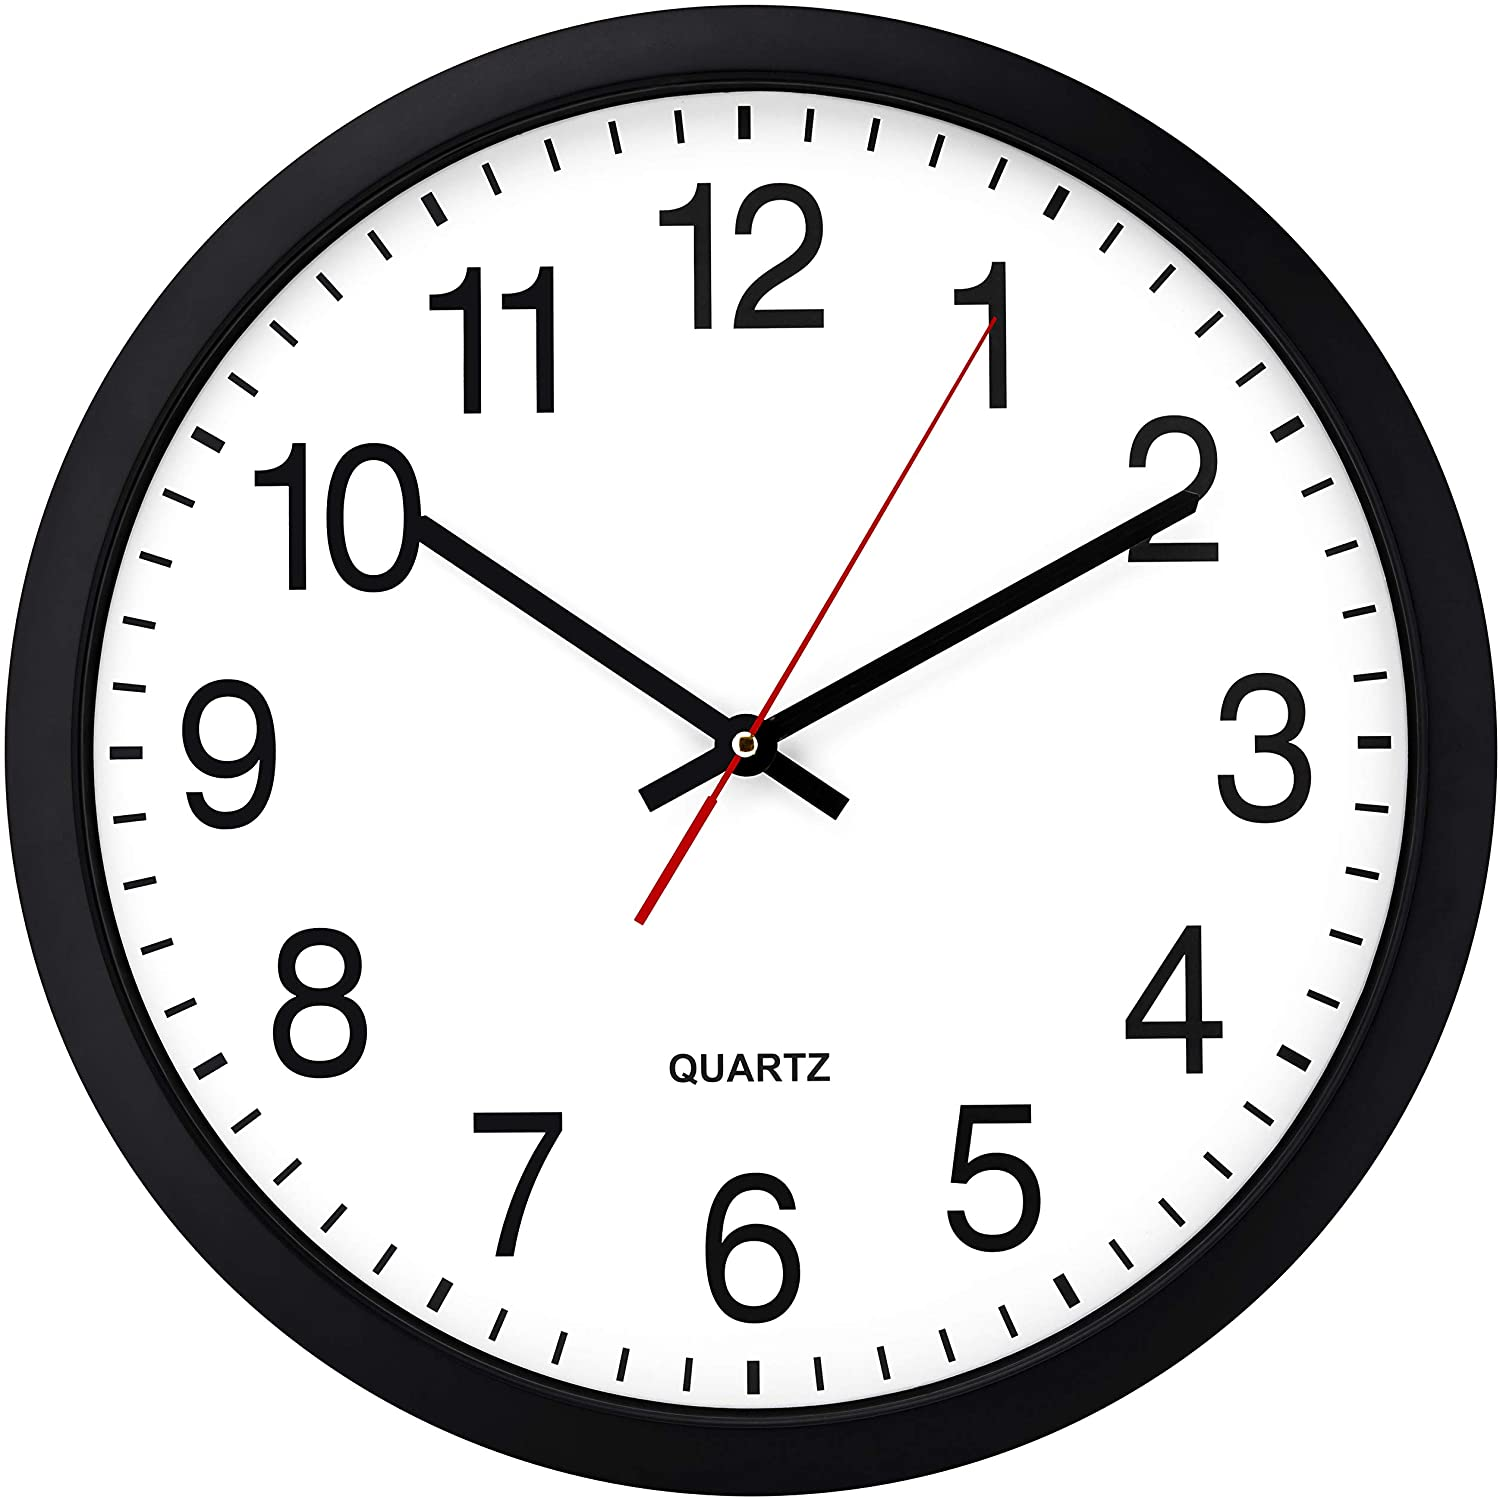 Bernhard Products Black Wall Clock Silent Inch Sale special price - Non Bombing free shipping Ticking 16